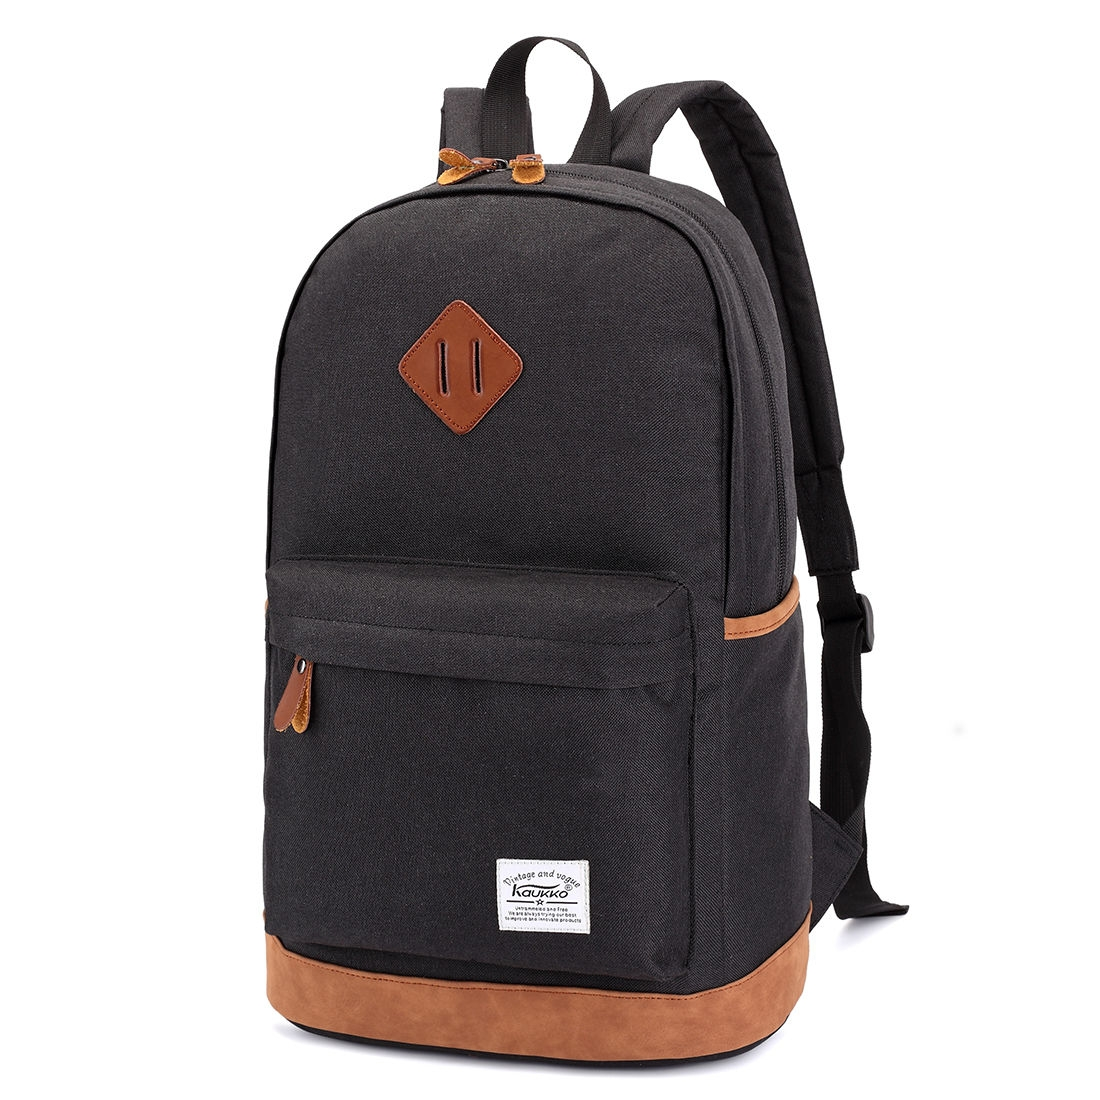 68334d51a9e2 Large Canvas Backpack For School- Fenix Toulouse Handball